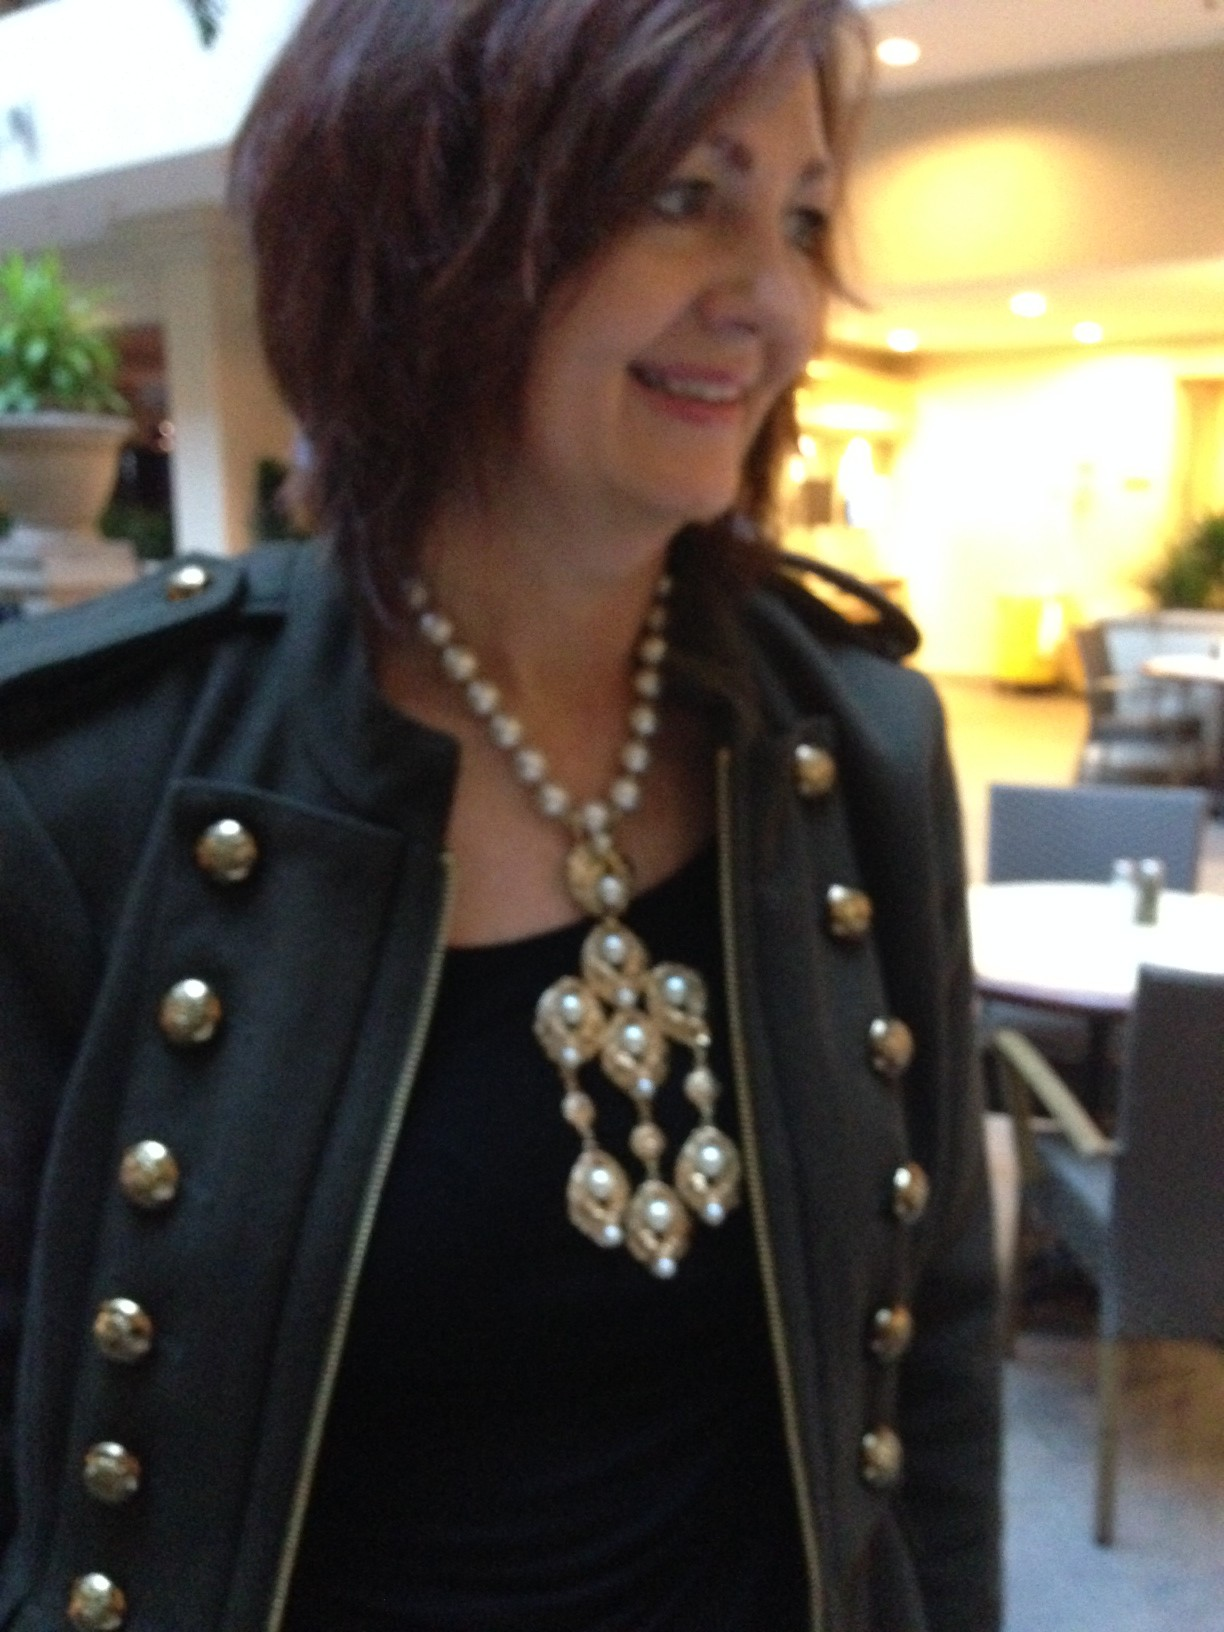 A necklace plays with a jacket